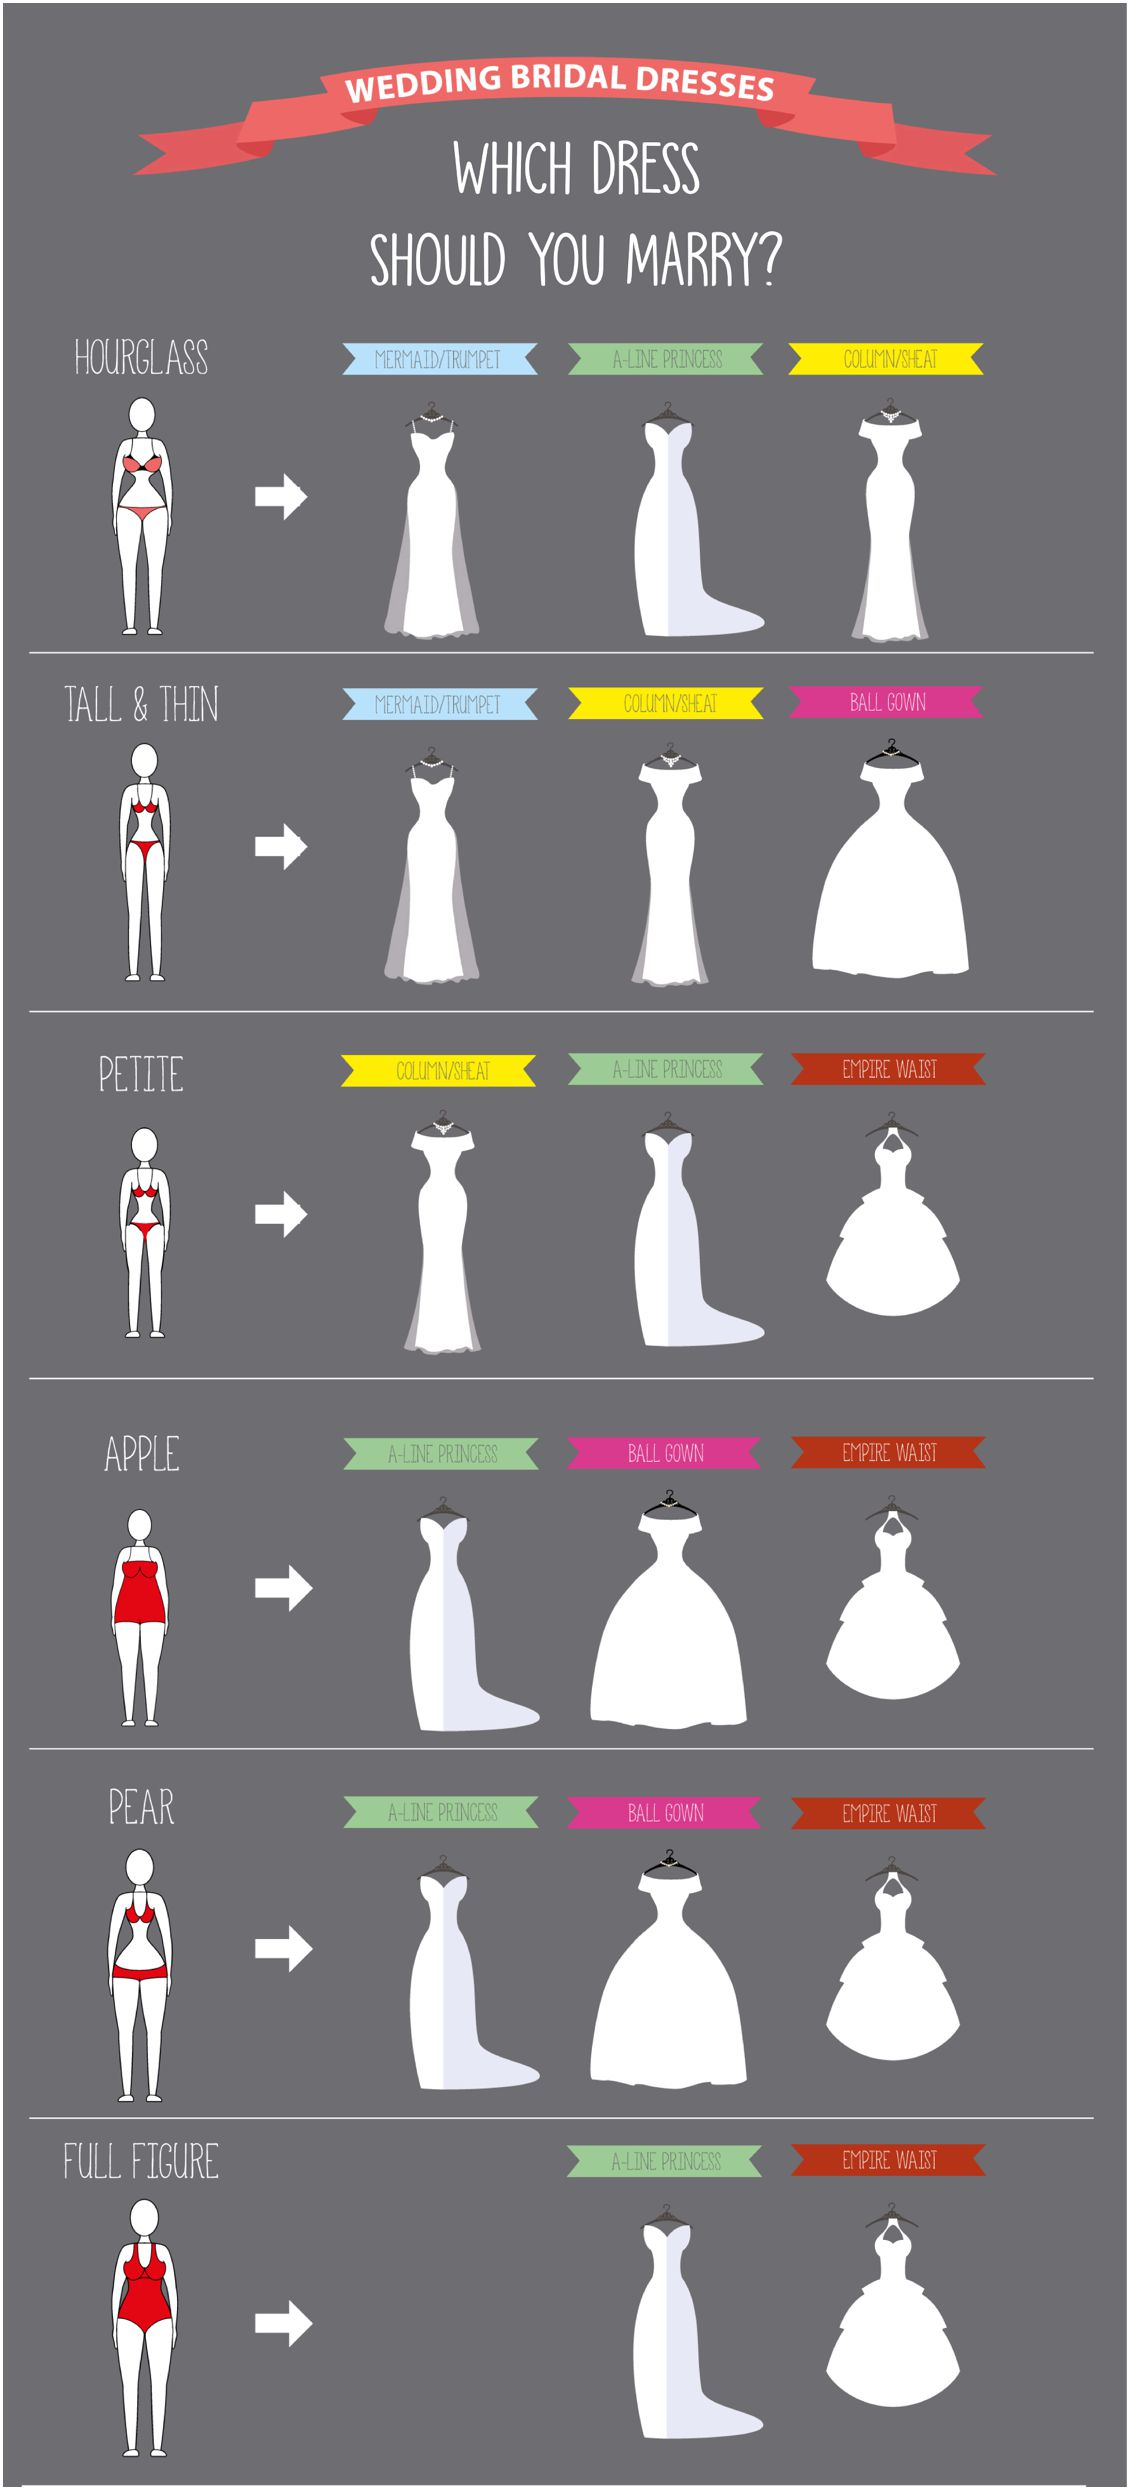 Wedding Dress Styles for Body